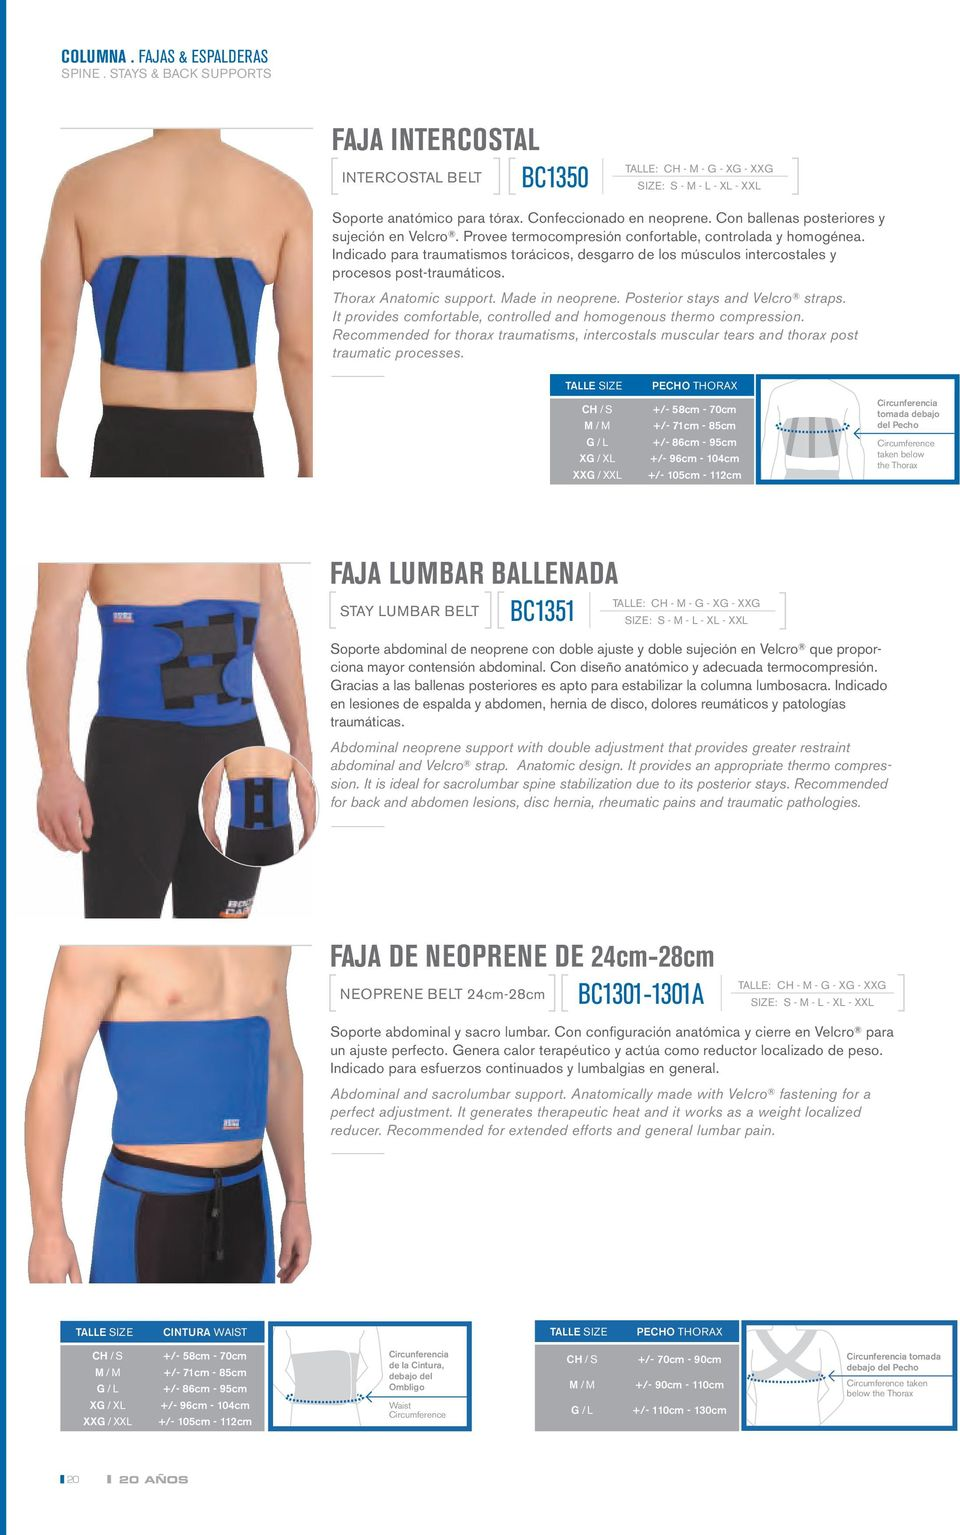 Indicado para traumatismos torácicos, desgarro de los músculos intercostales y procesos post-traumáticos. Thorax Anatomic support. Made in neoprene. Posterior stays and Velcro straps.